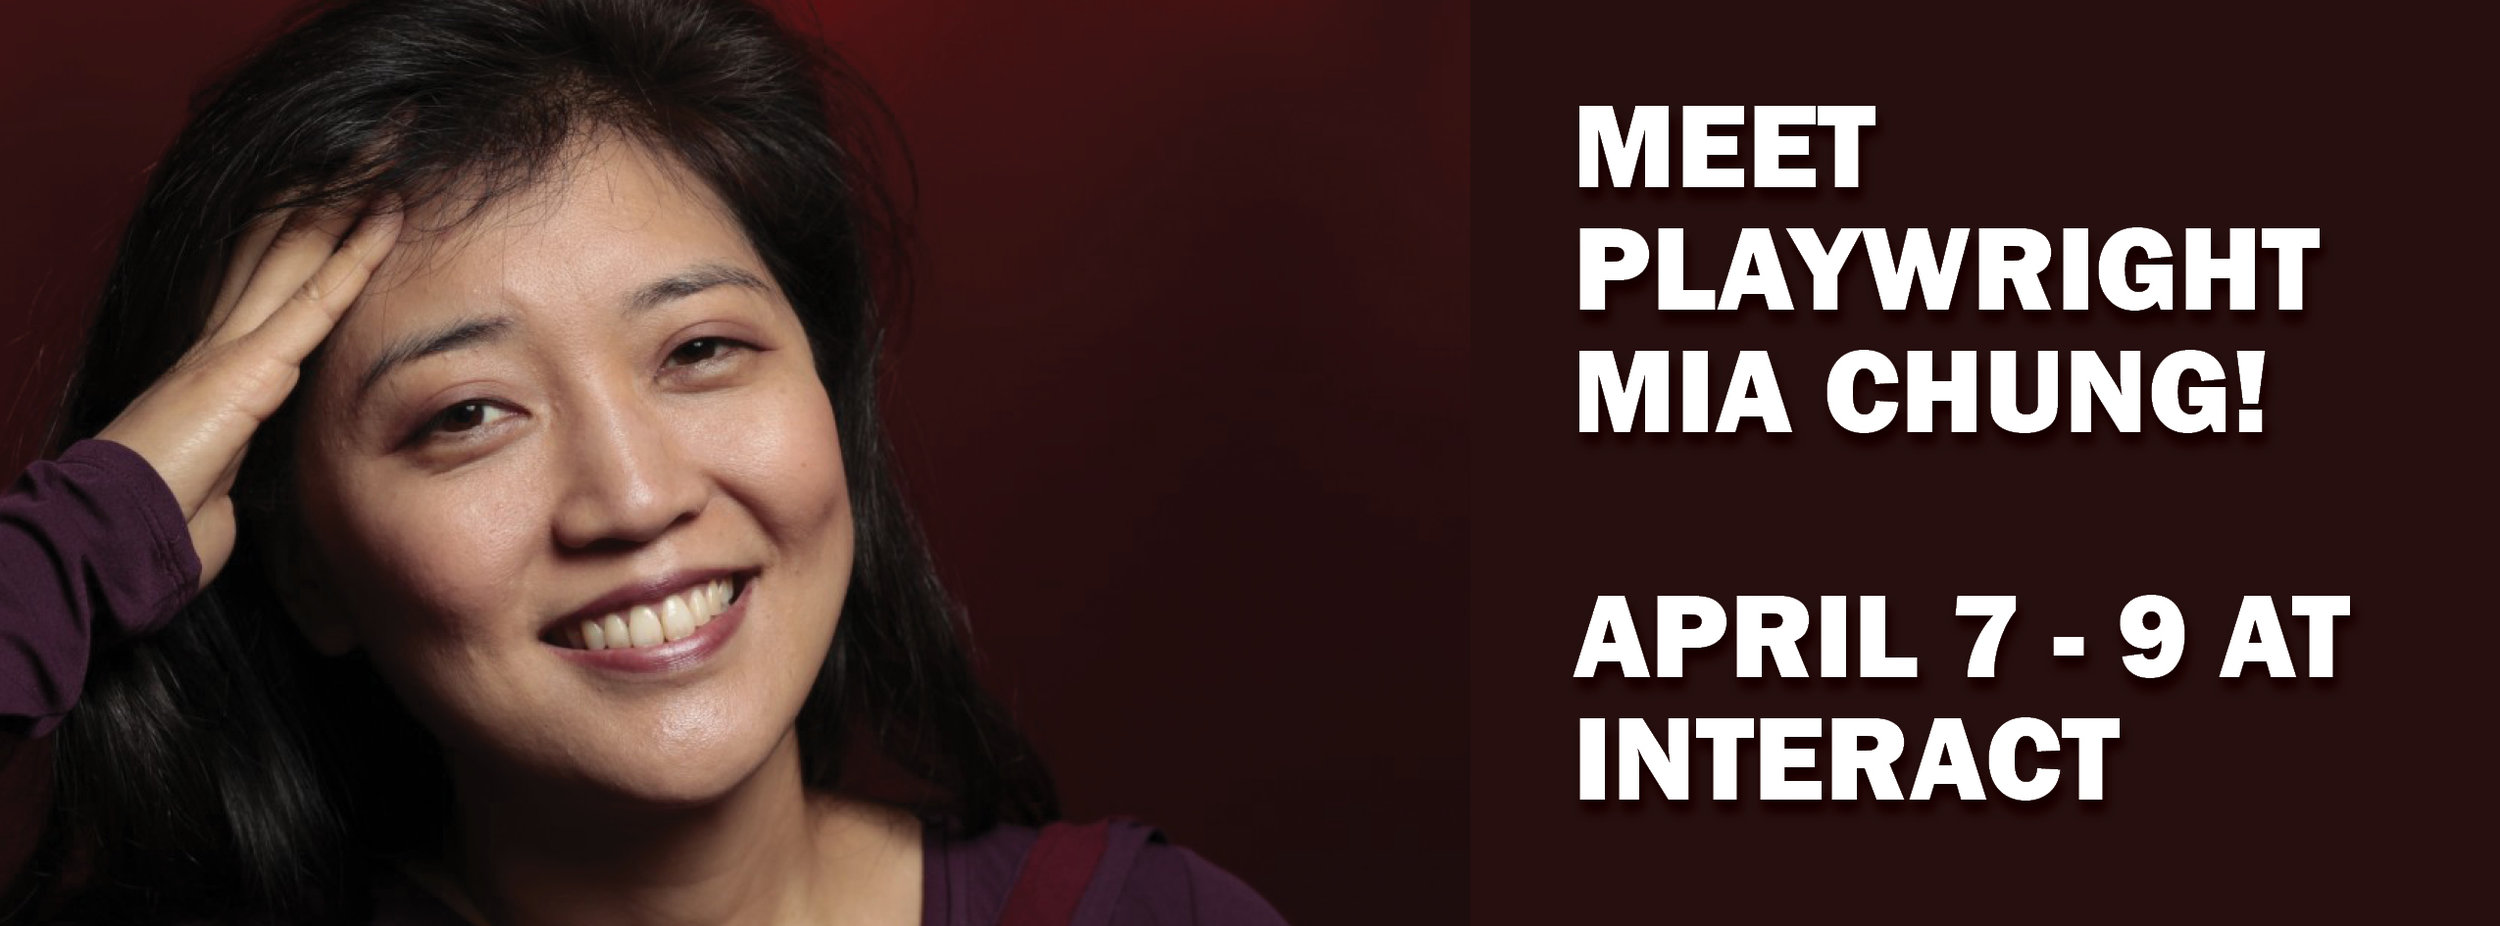 PLAYWRIGHT MIA CHUNG  IS HERE April 7 - 9th!    FRIDAY, APRIL 7 @  6:00 pm--- MEET AND GREET HAPPY HOUR with MIA CHUNG and Choreographer JUNGWOONG KIM    SATURDAY, APRIL 8 @ ~9:45 pm -- POST-SHOW AUDIENCE DISCUSSION    SUNDAY, APRIL 9 @ ~3:45 pm -- SPEAKER SUNDAY EVENT     (All YOU FOR ME FOR YOU ticket holders are welcome to attend)